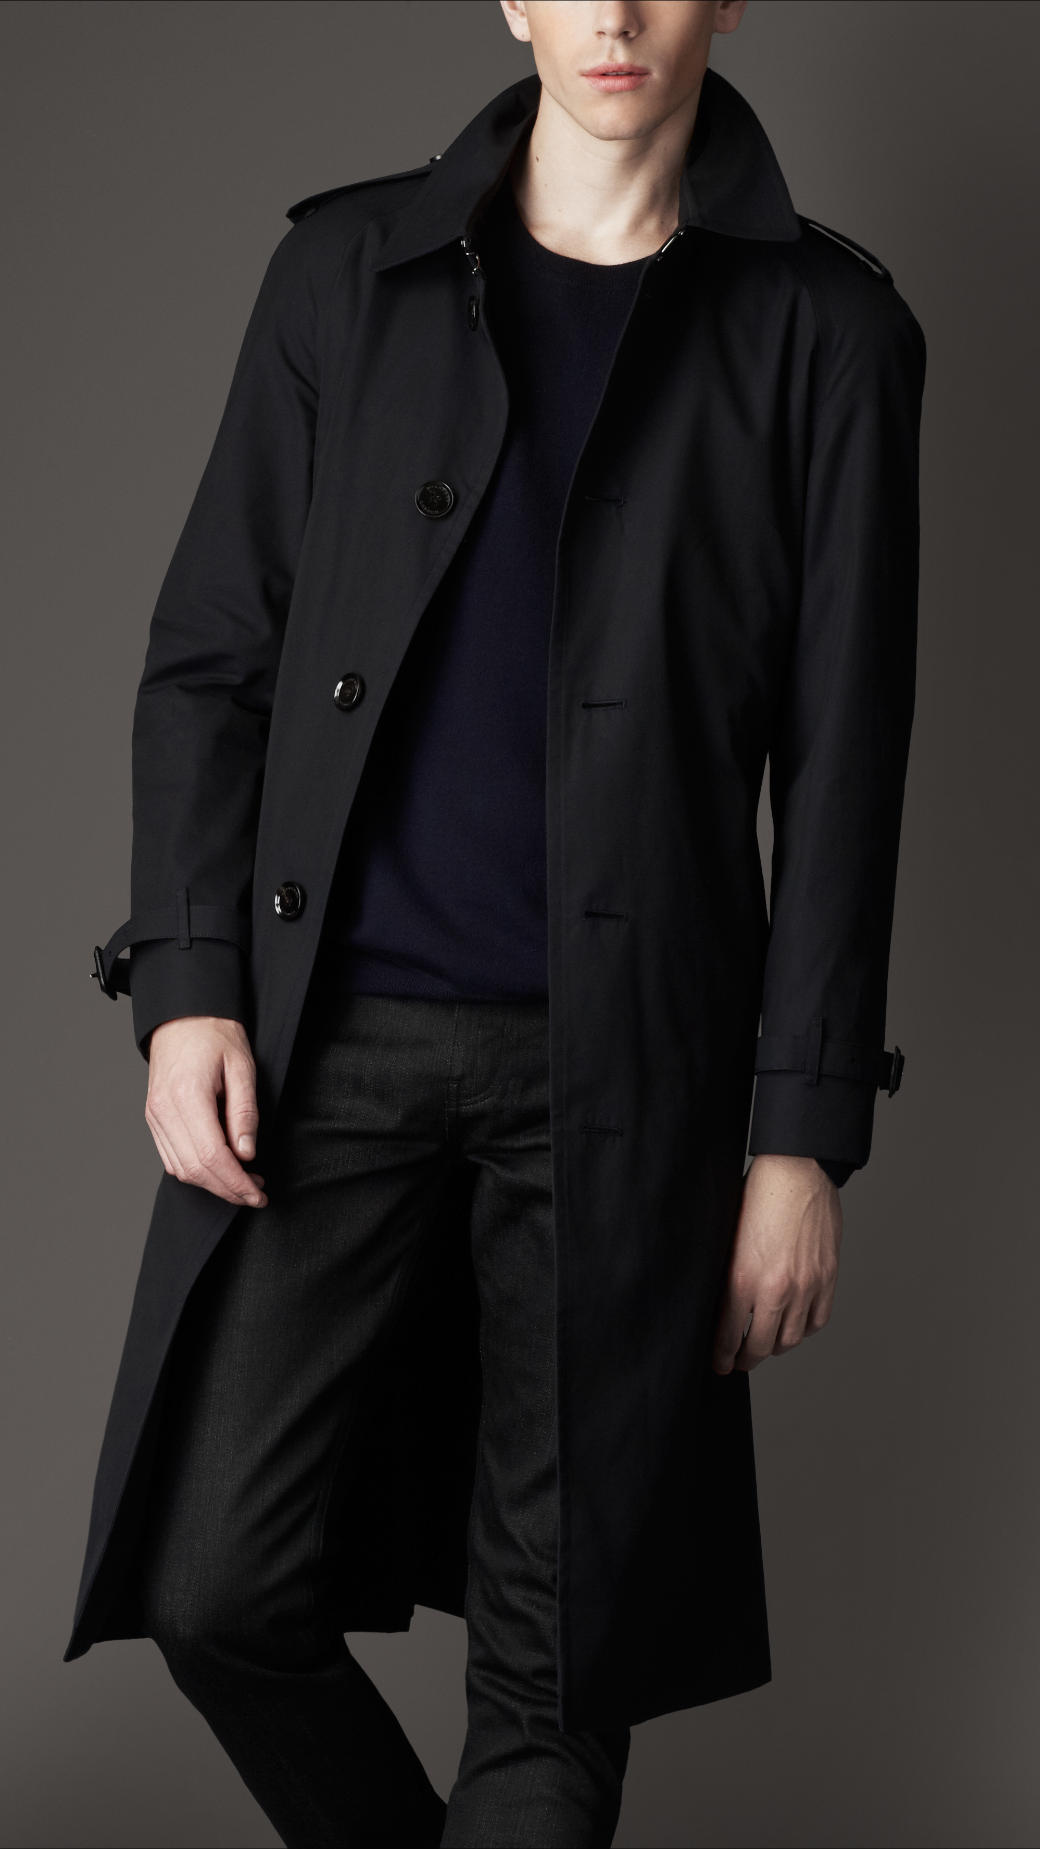 burberry heritage cotton trench coat in blue for men lyst #2: burberry navy heritage cotton trench coat product 1